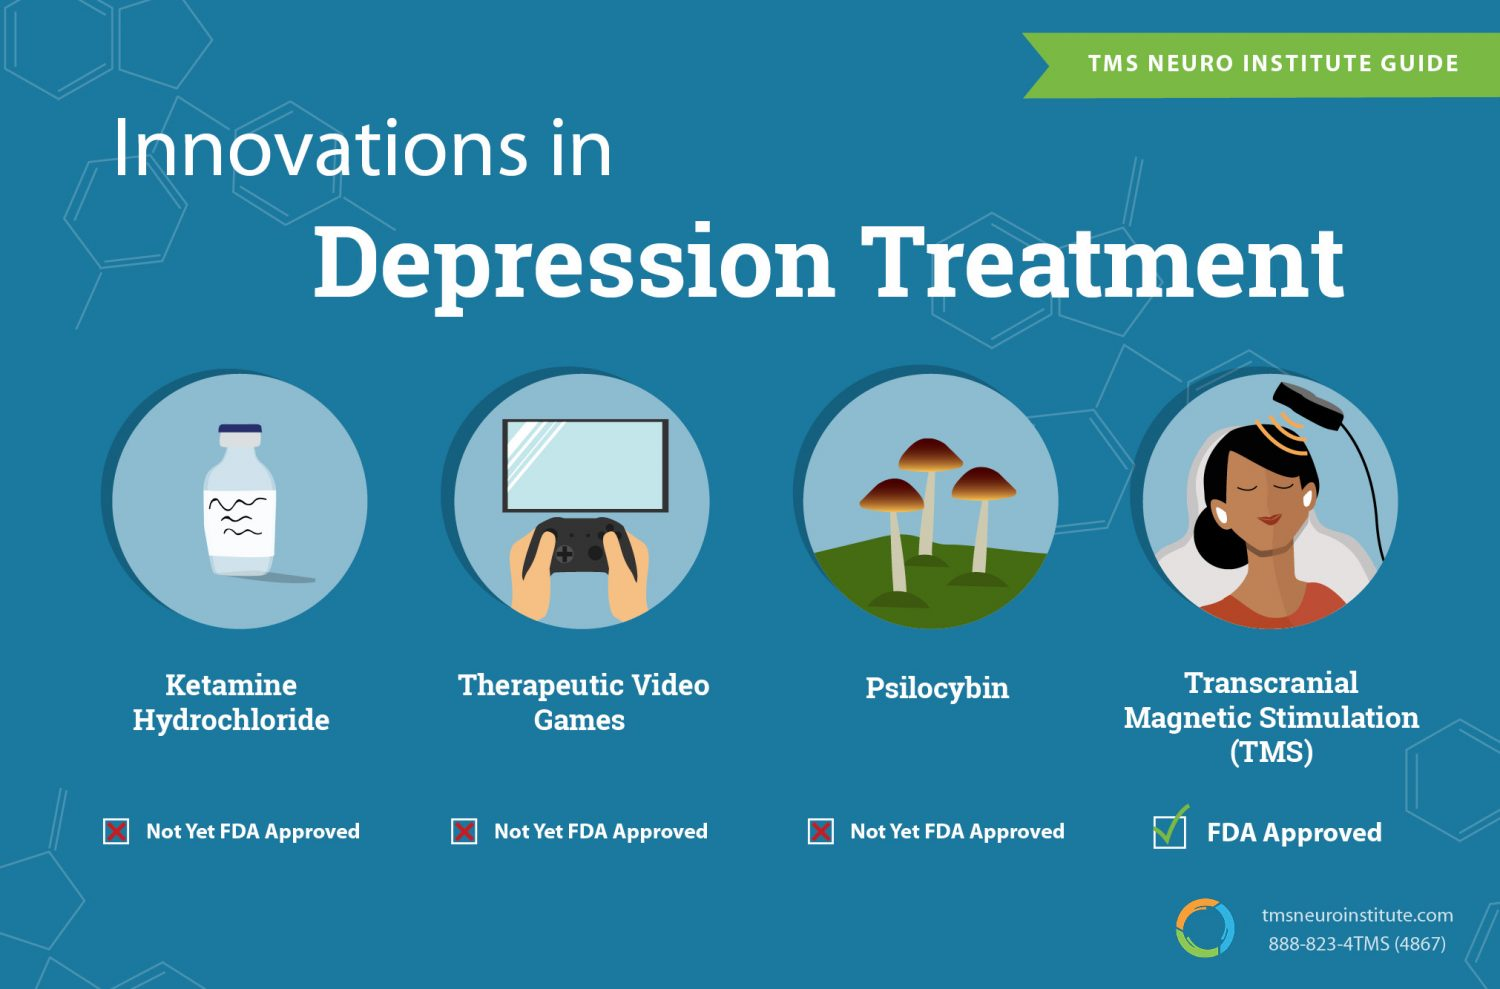 Transcranial Magnetic Stimulation Offers Hope for Treatment-Resistant Depression